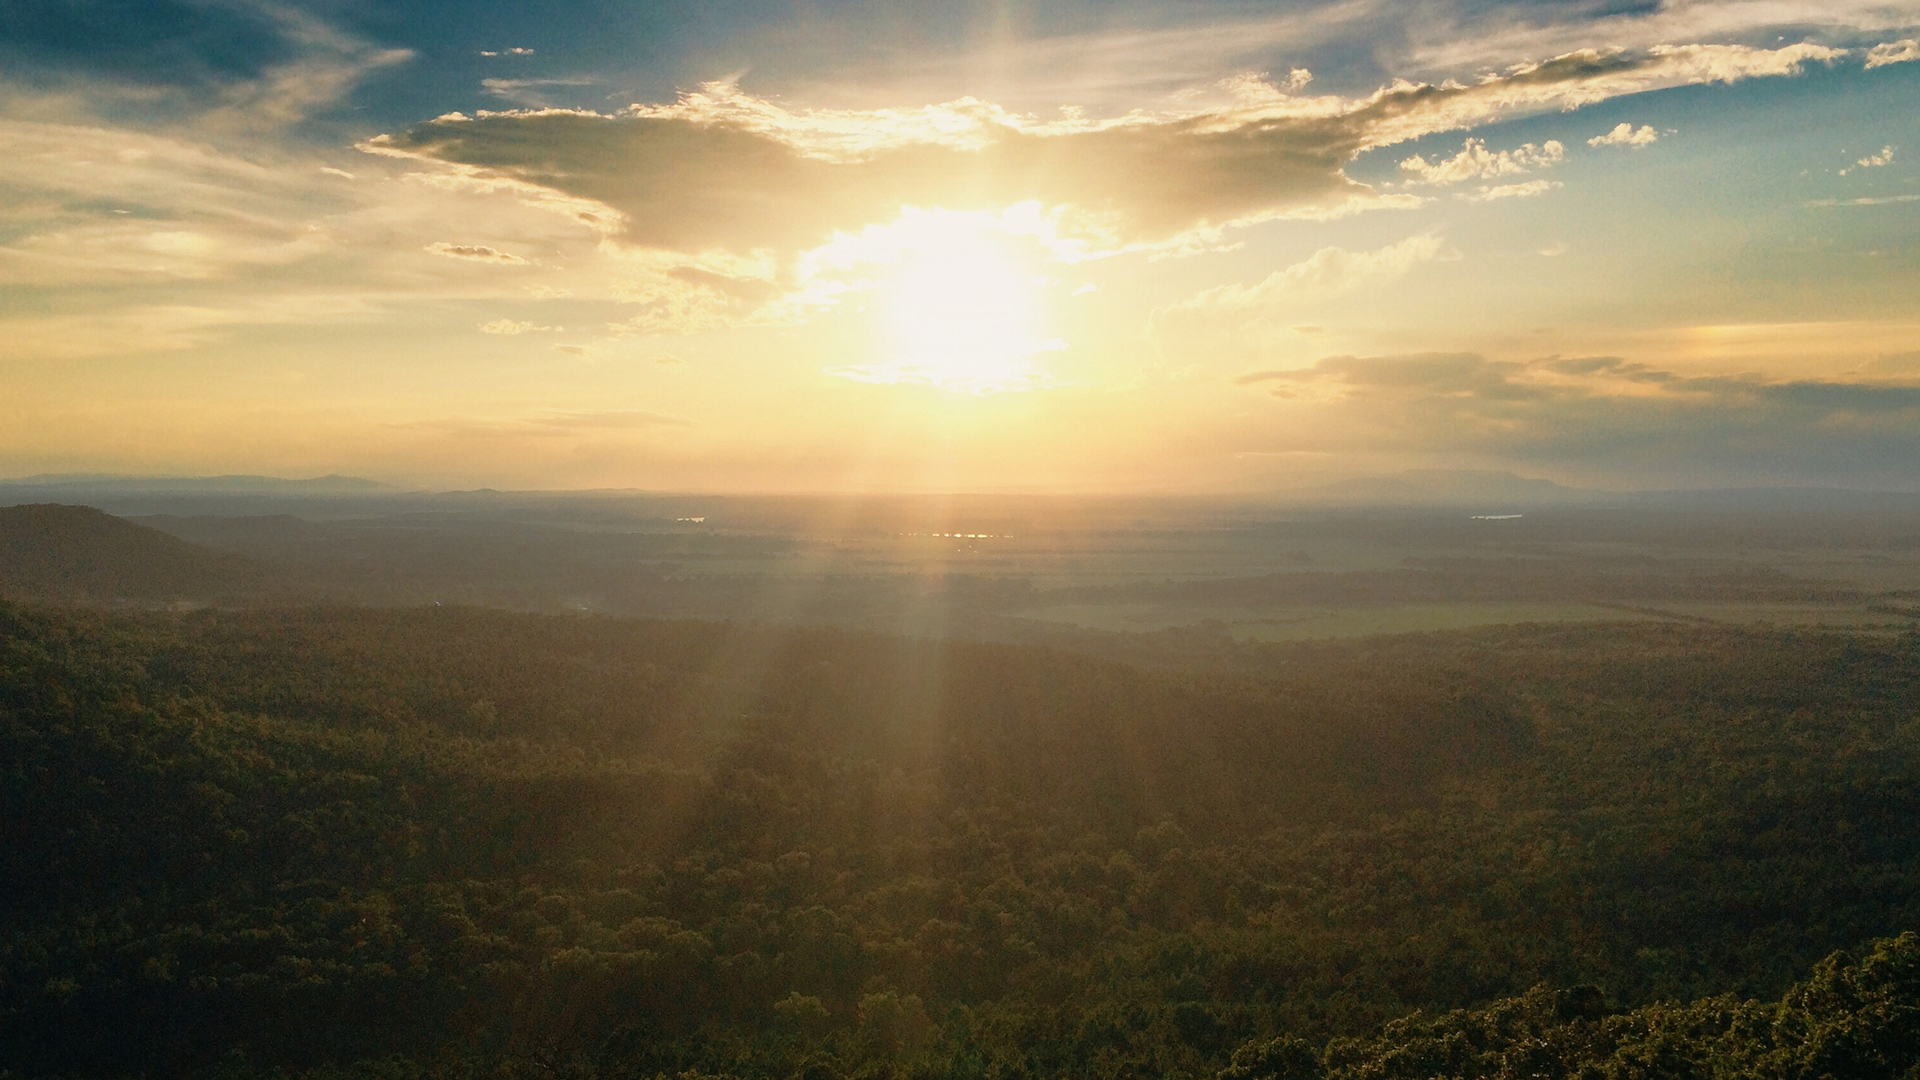 Six Reasons to Have Certainty in Jesus' Resurrection